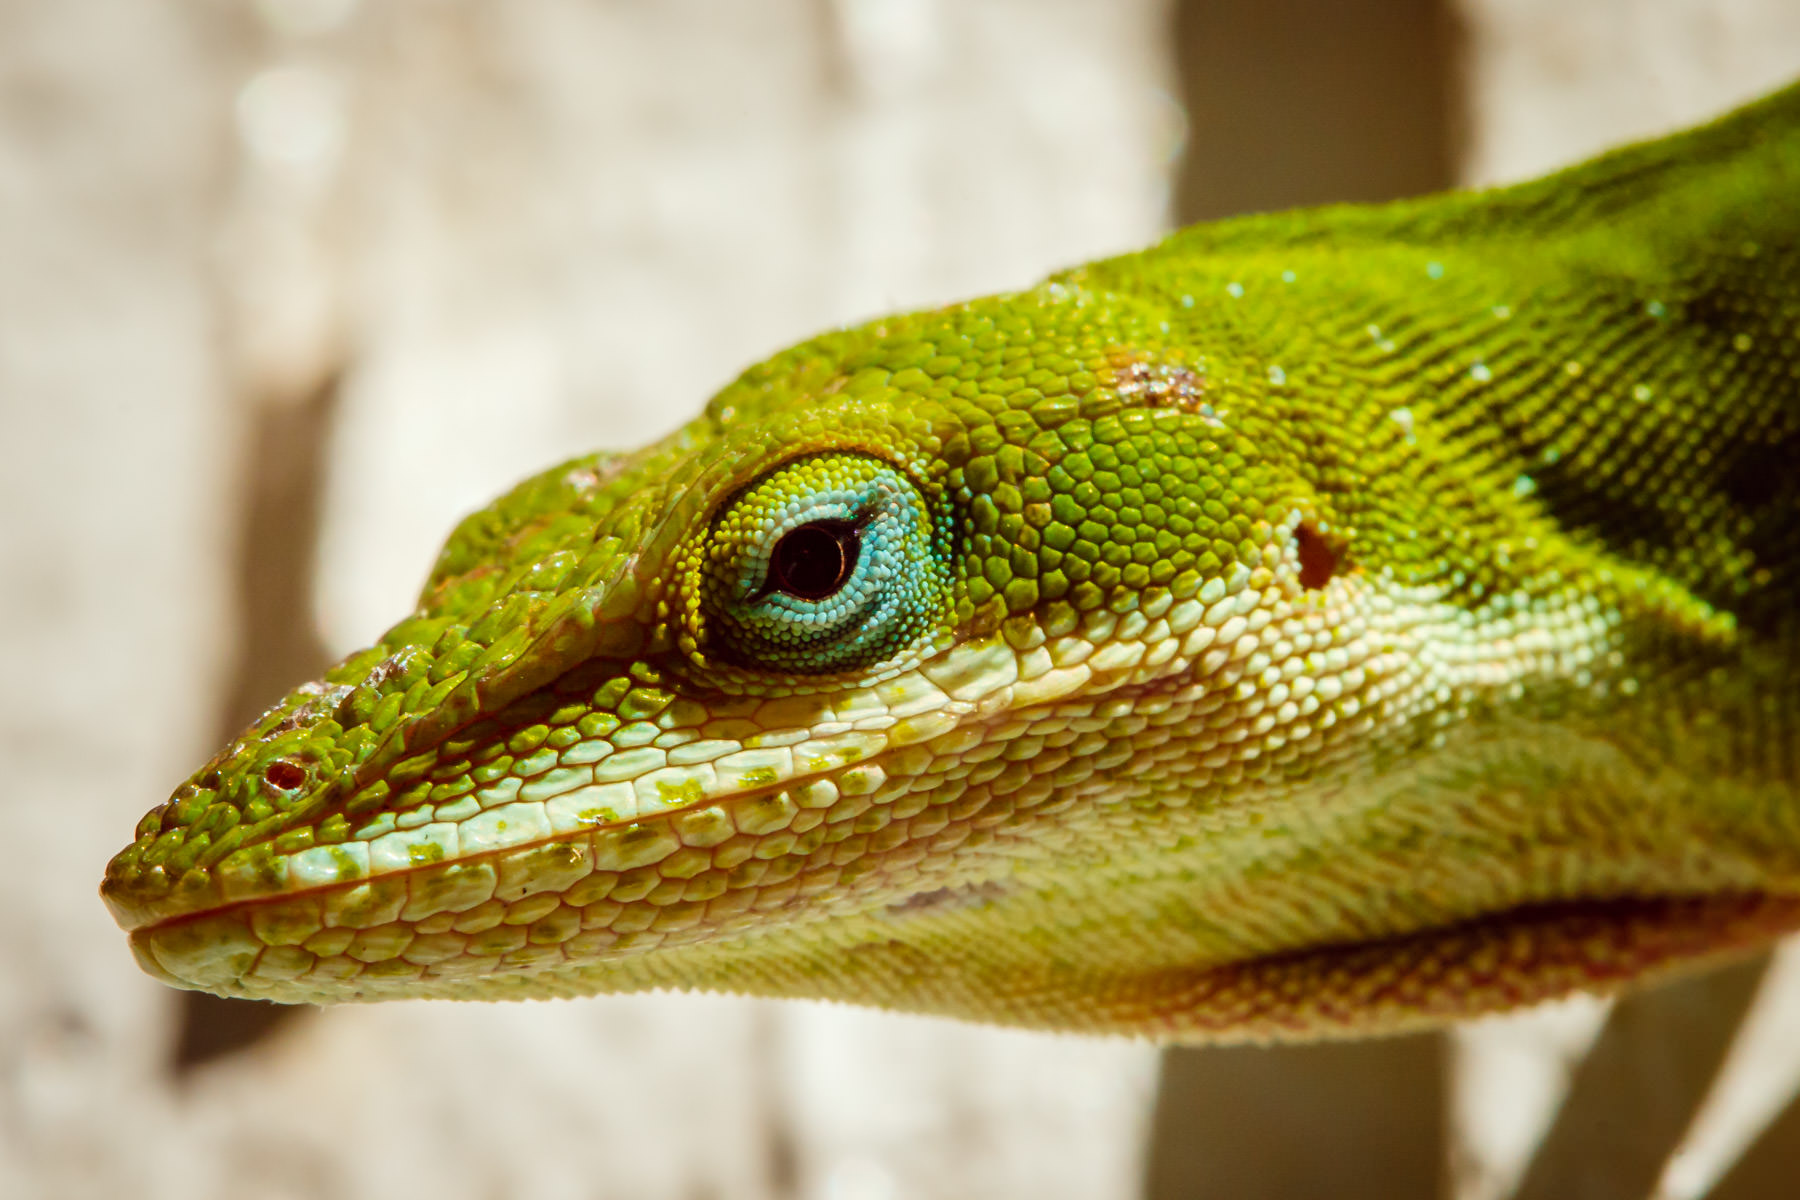 An inquisitive green anole eyes my camera.